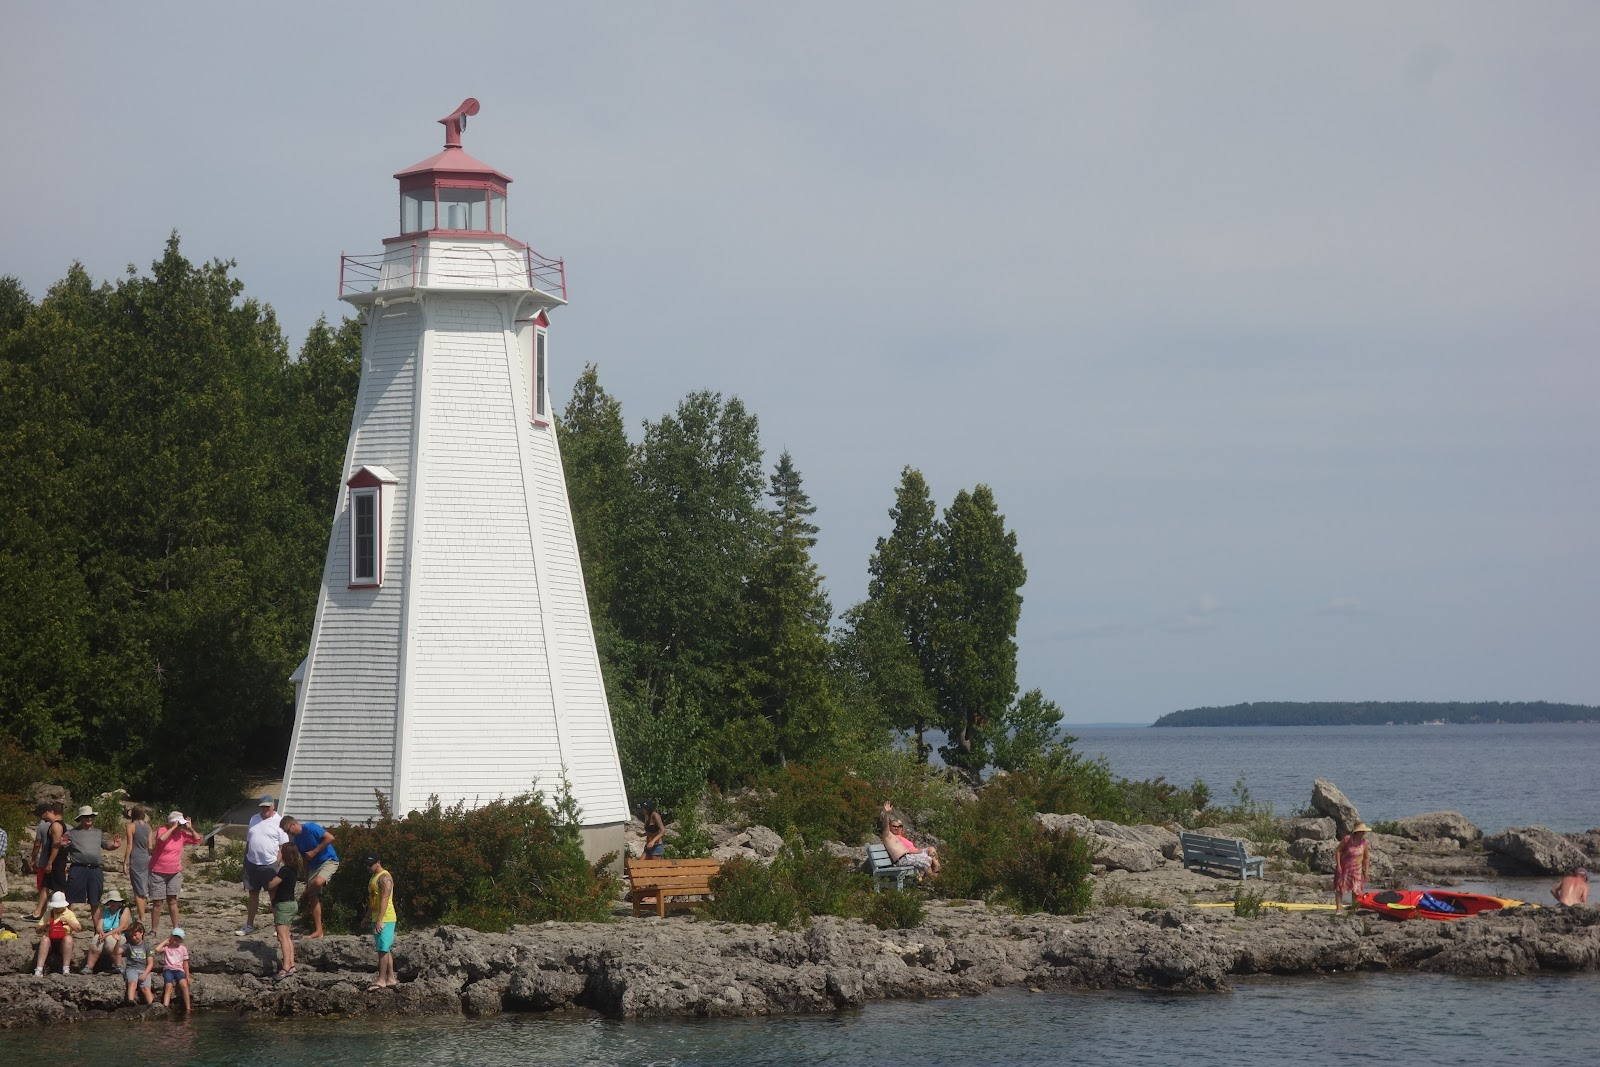 Cheryl's Travels: A Day on the Water - just my kind of day